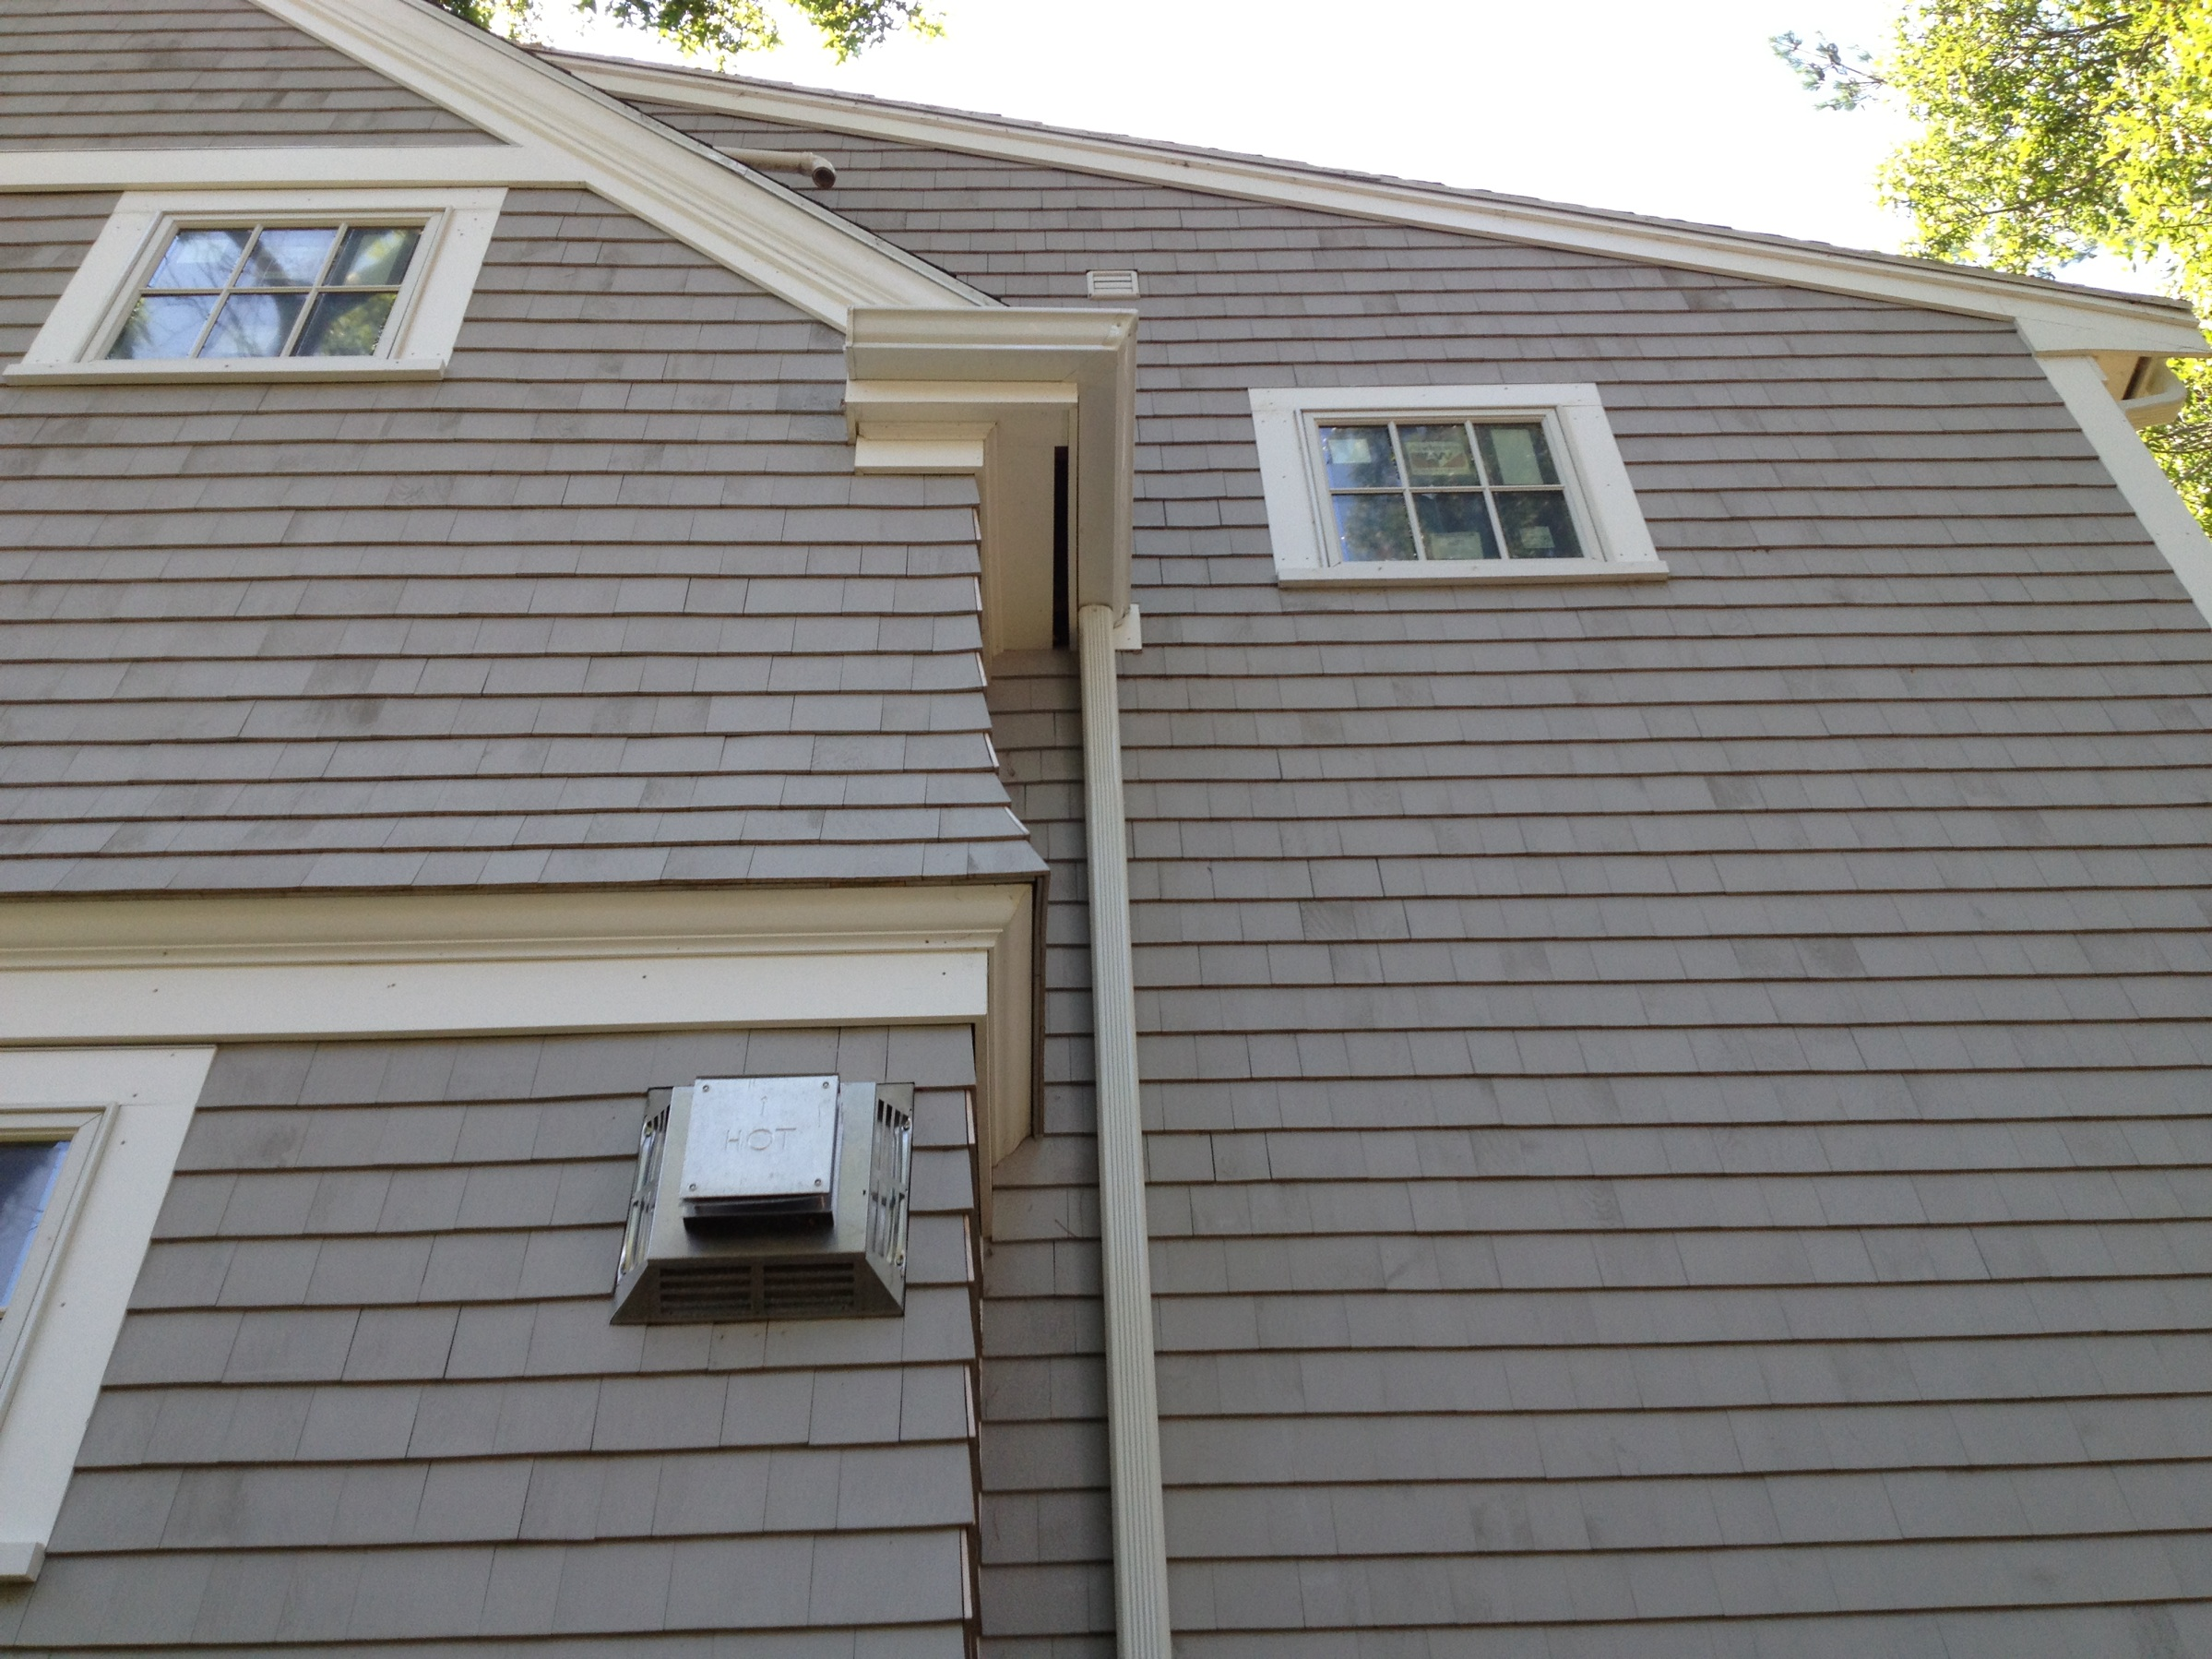 Aluminum Gutter Gutter Pro On The Job In Massachusetts